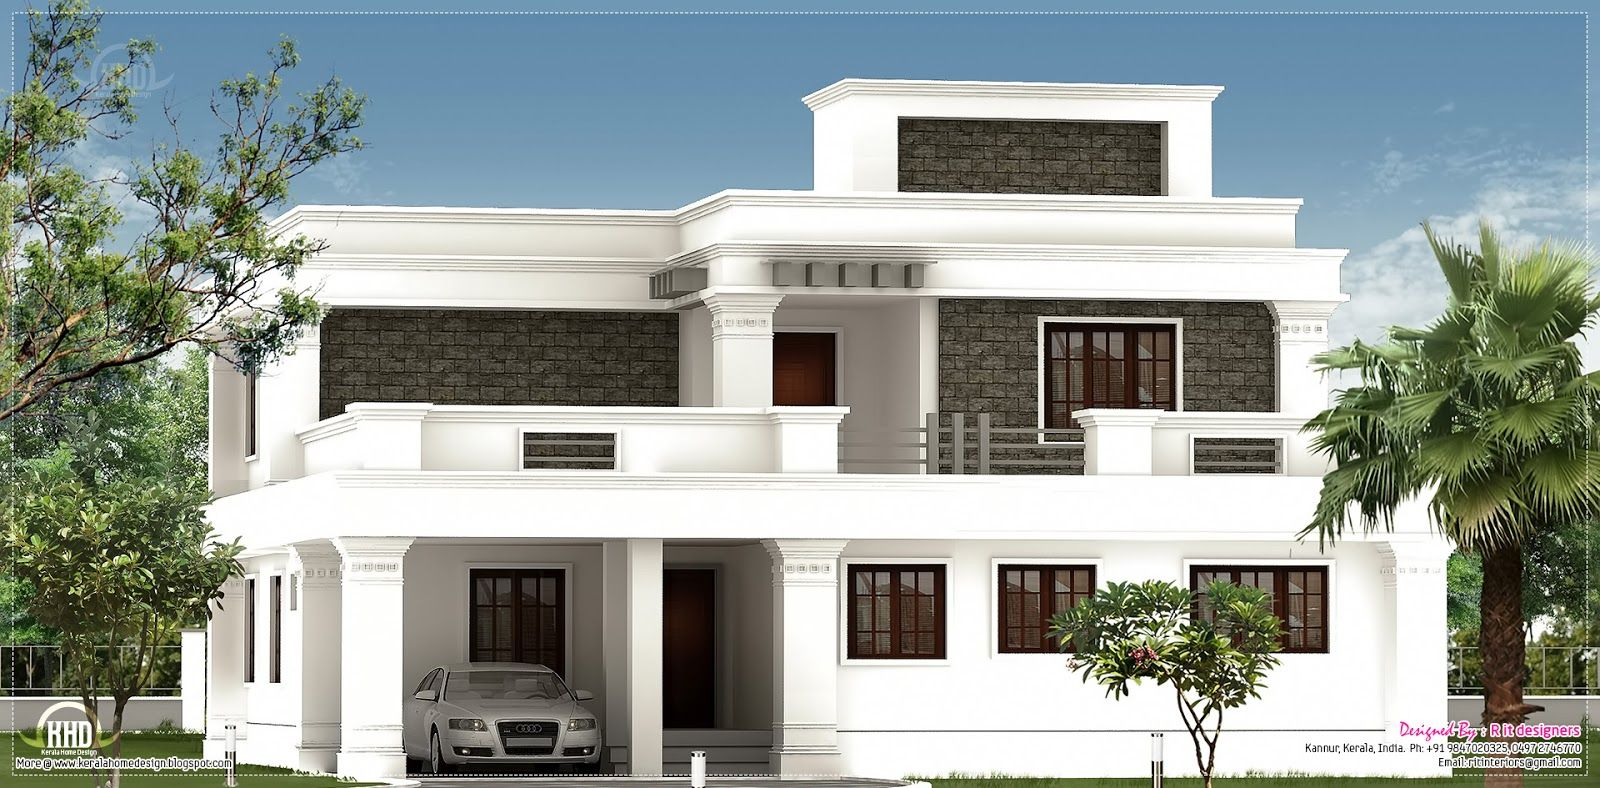 Flat roof homes designs flat roof villa exterior in 2400 for Front exterior home designs